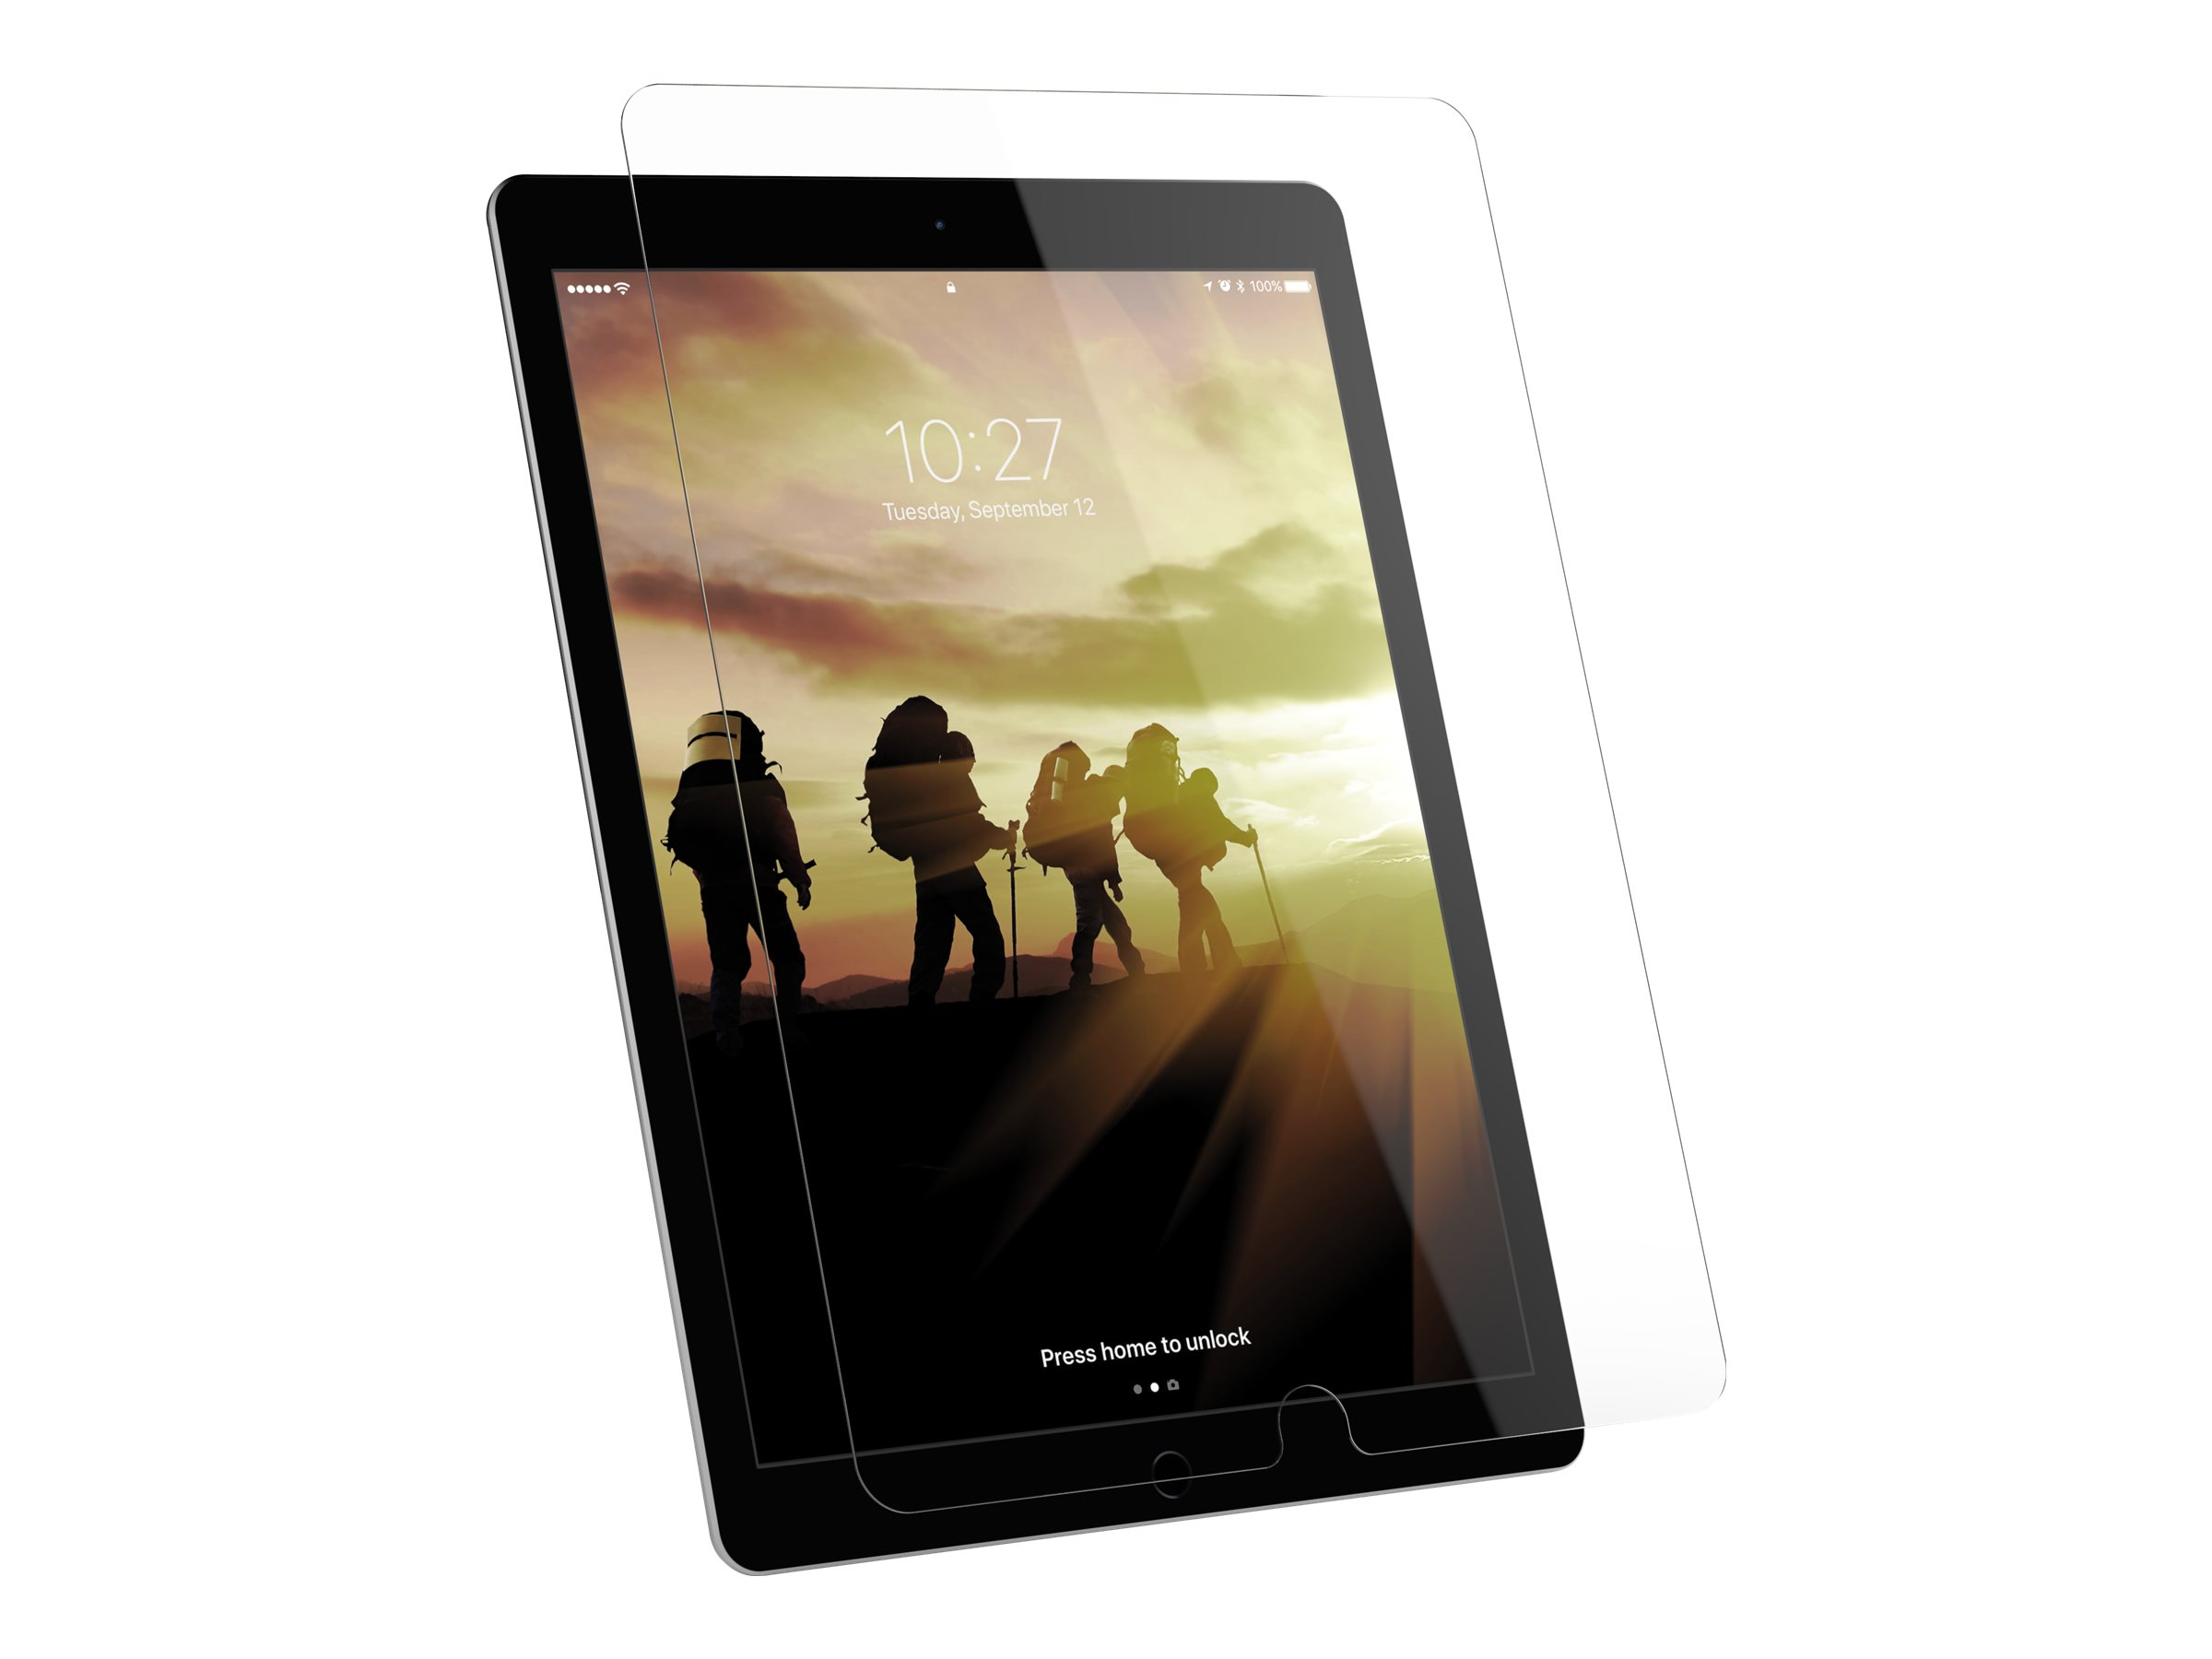 UAG Tempered Glass Shield for iPad Pro 12.9-inch (2017) & (1st Gen) - screen protector